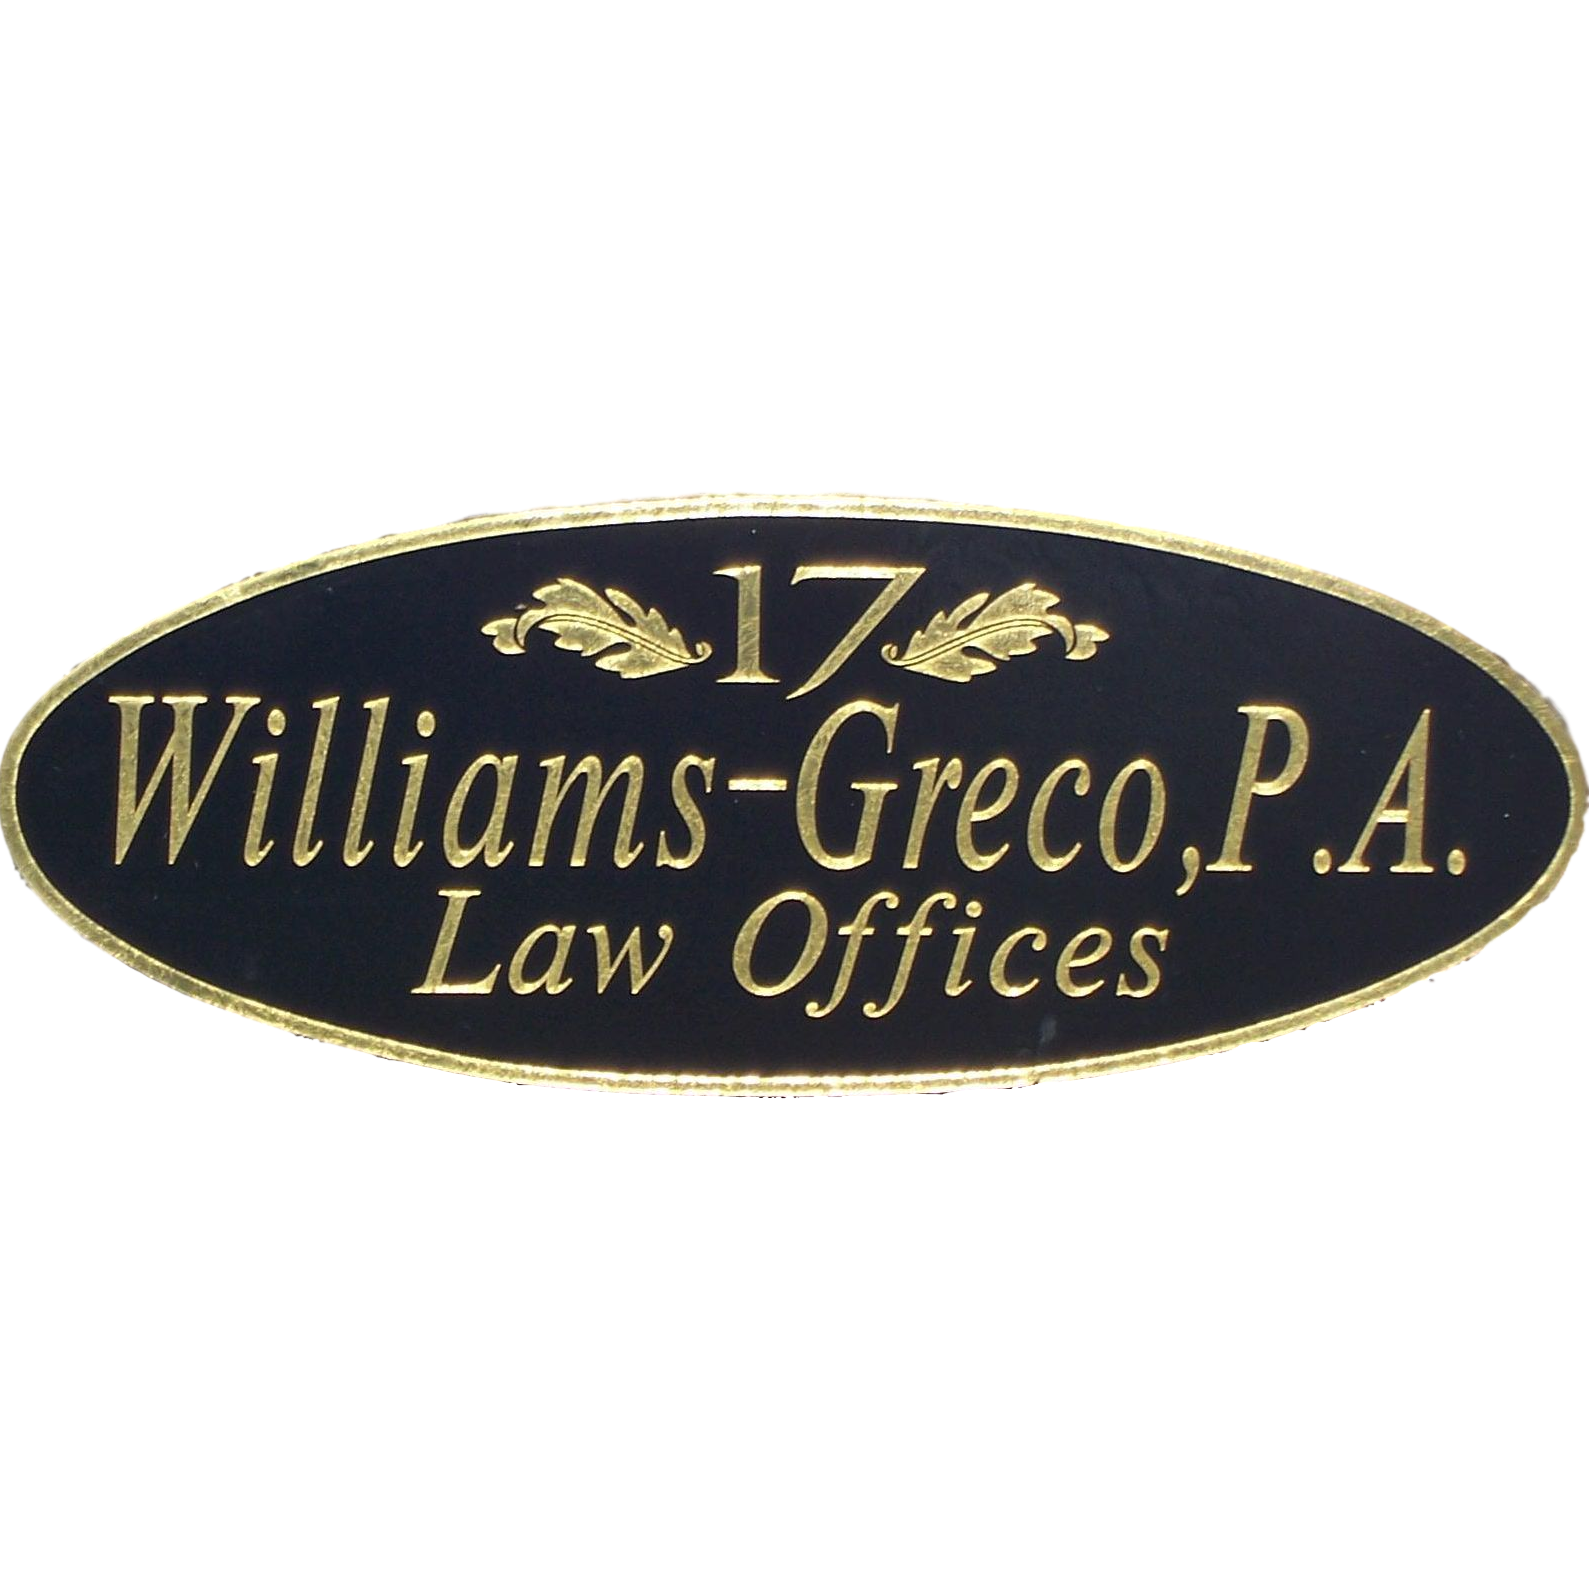 Williams-Greco, P.A., Law Offices